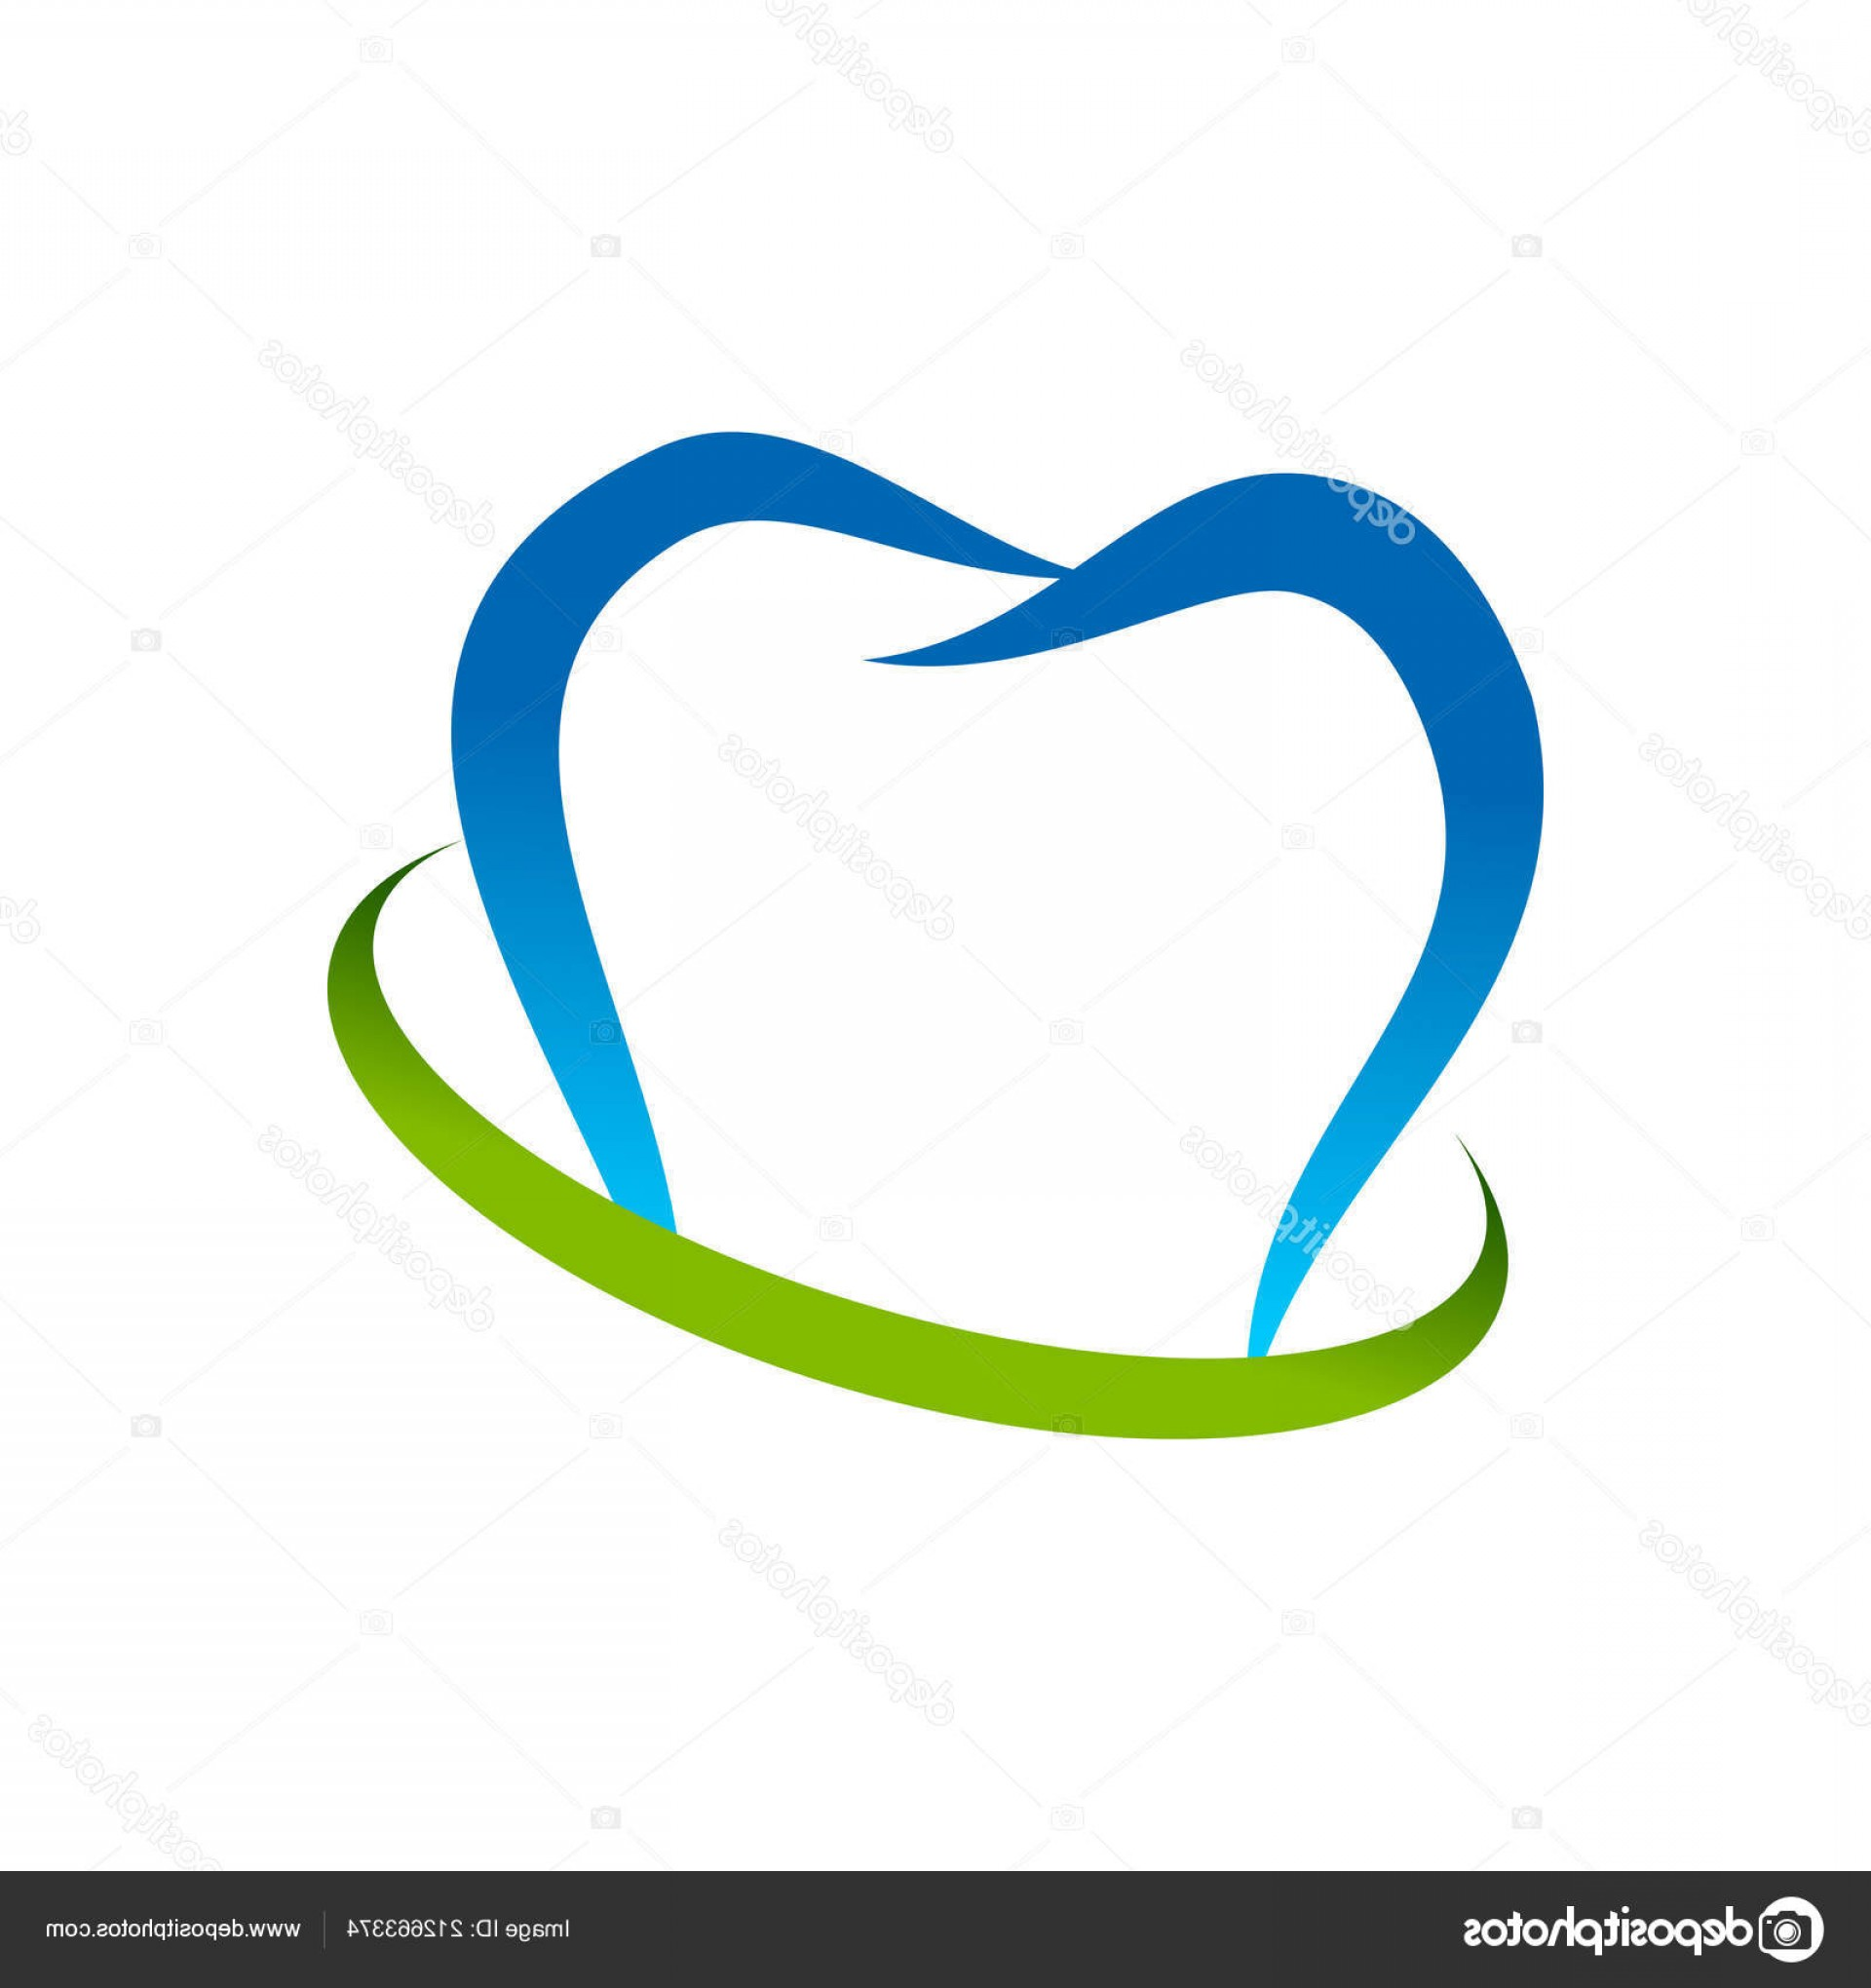 Swoosh Logo Vector Art: Stock Illustration Dental Consulting Abstract Teeth Swoosh